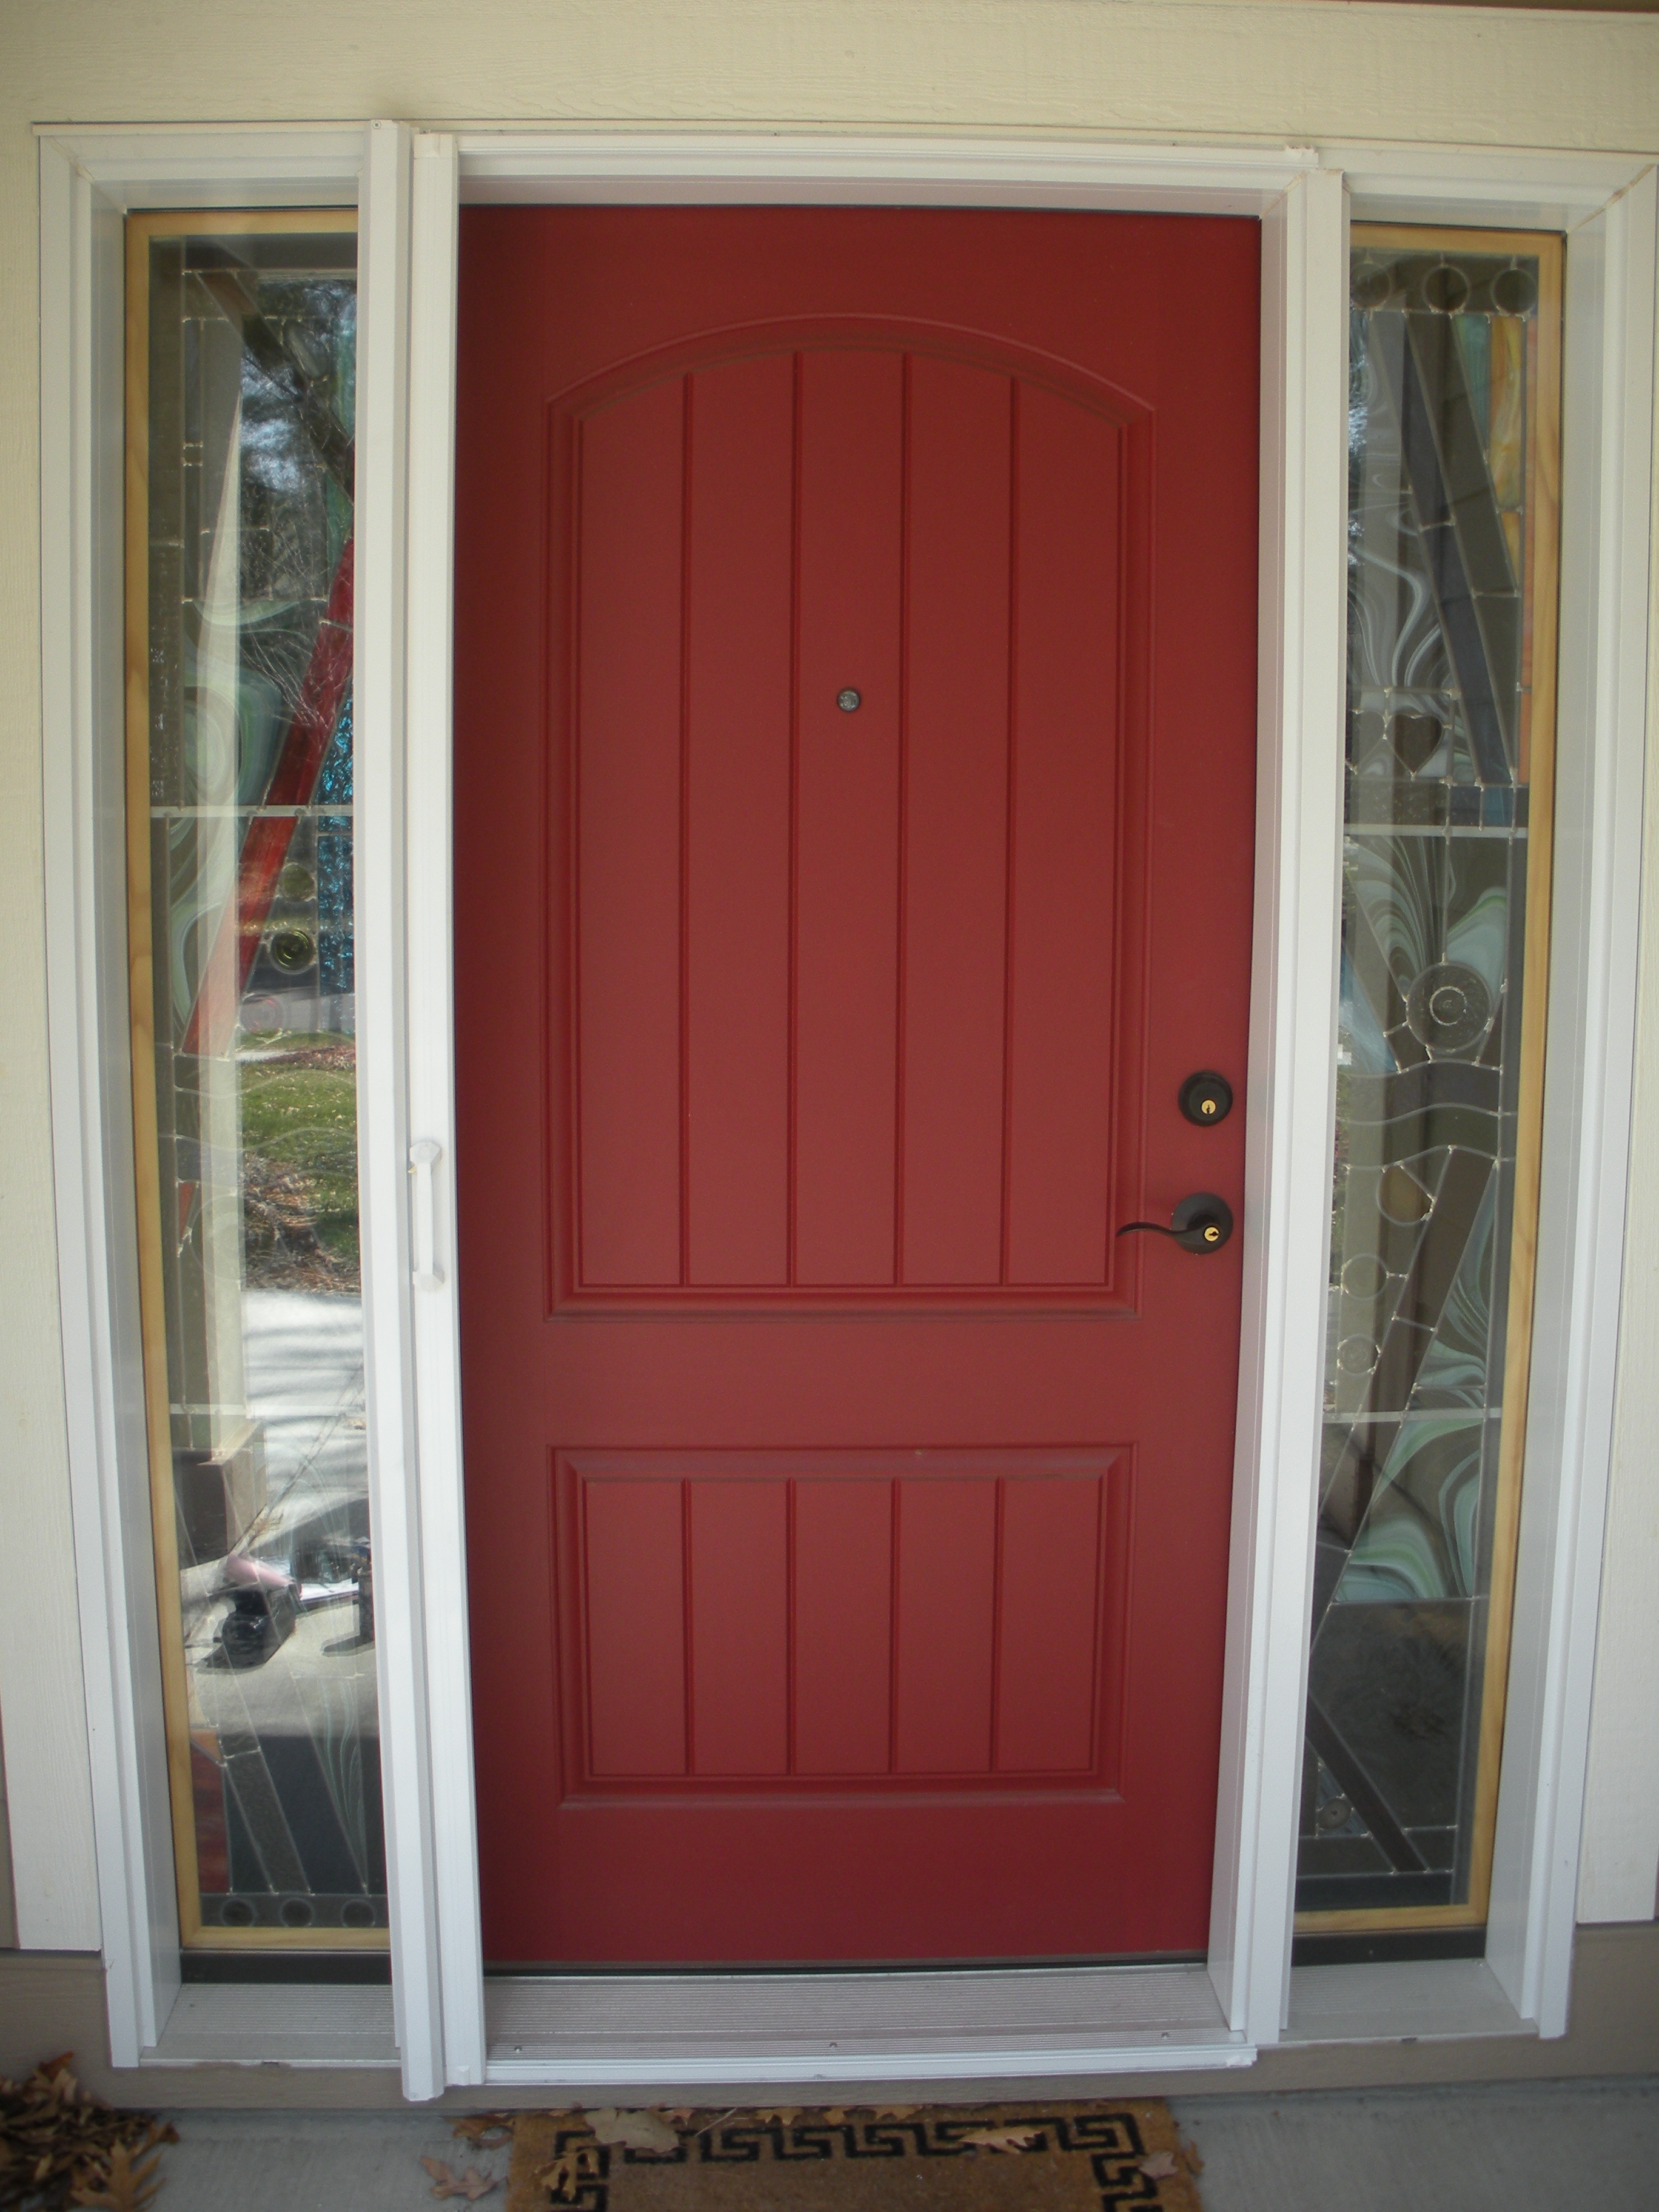 Doors With Screen: Retractable Door Screens